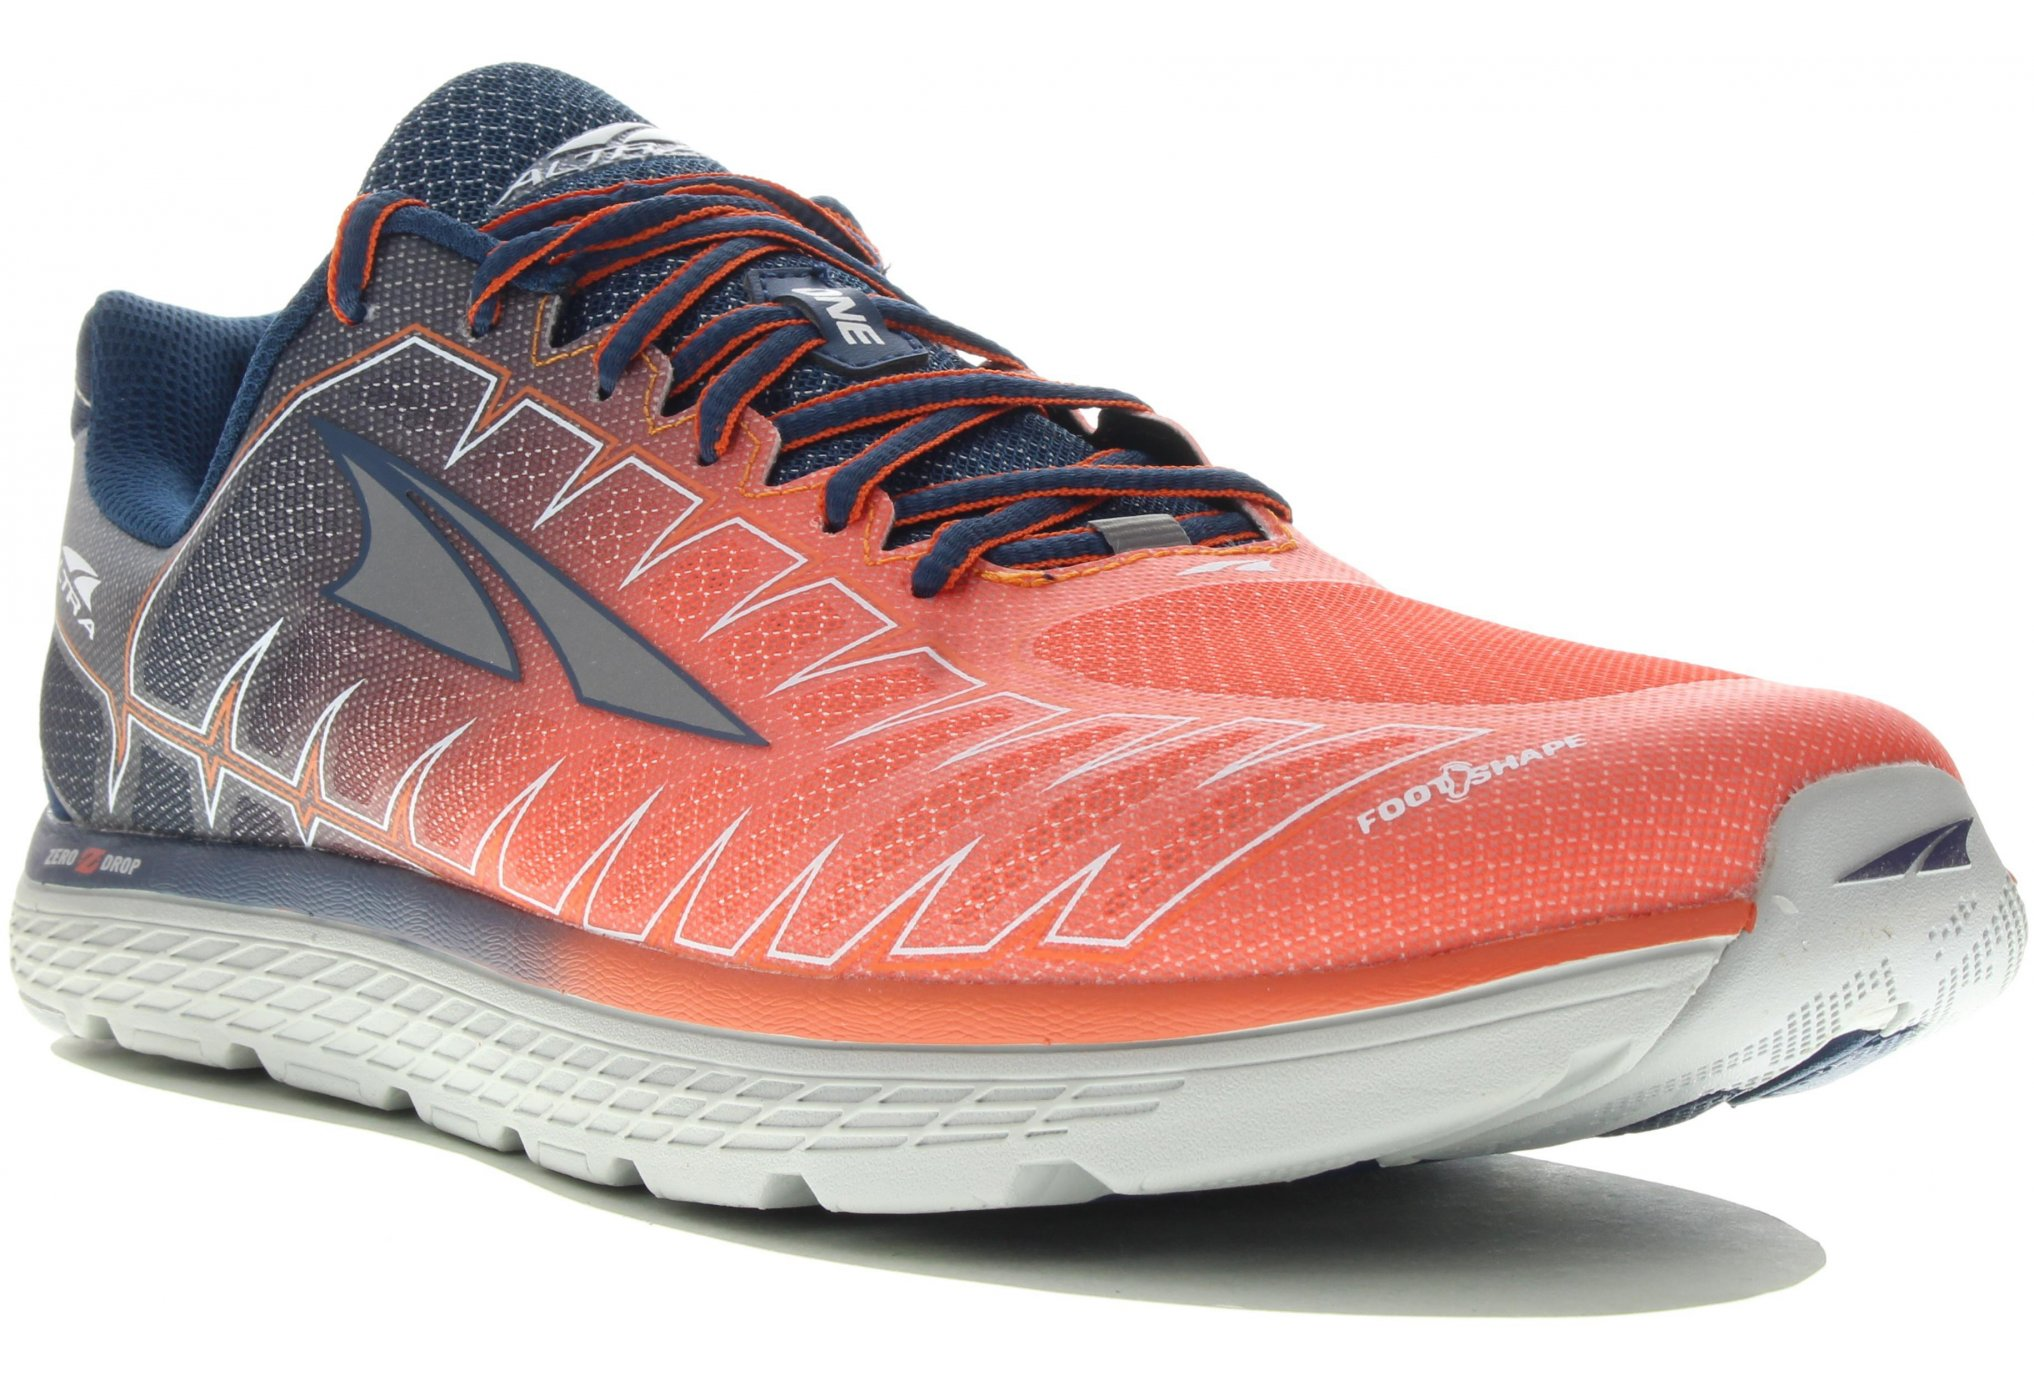 Altra One V3 Chaussures homme